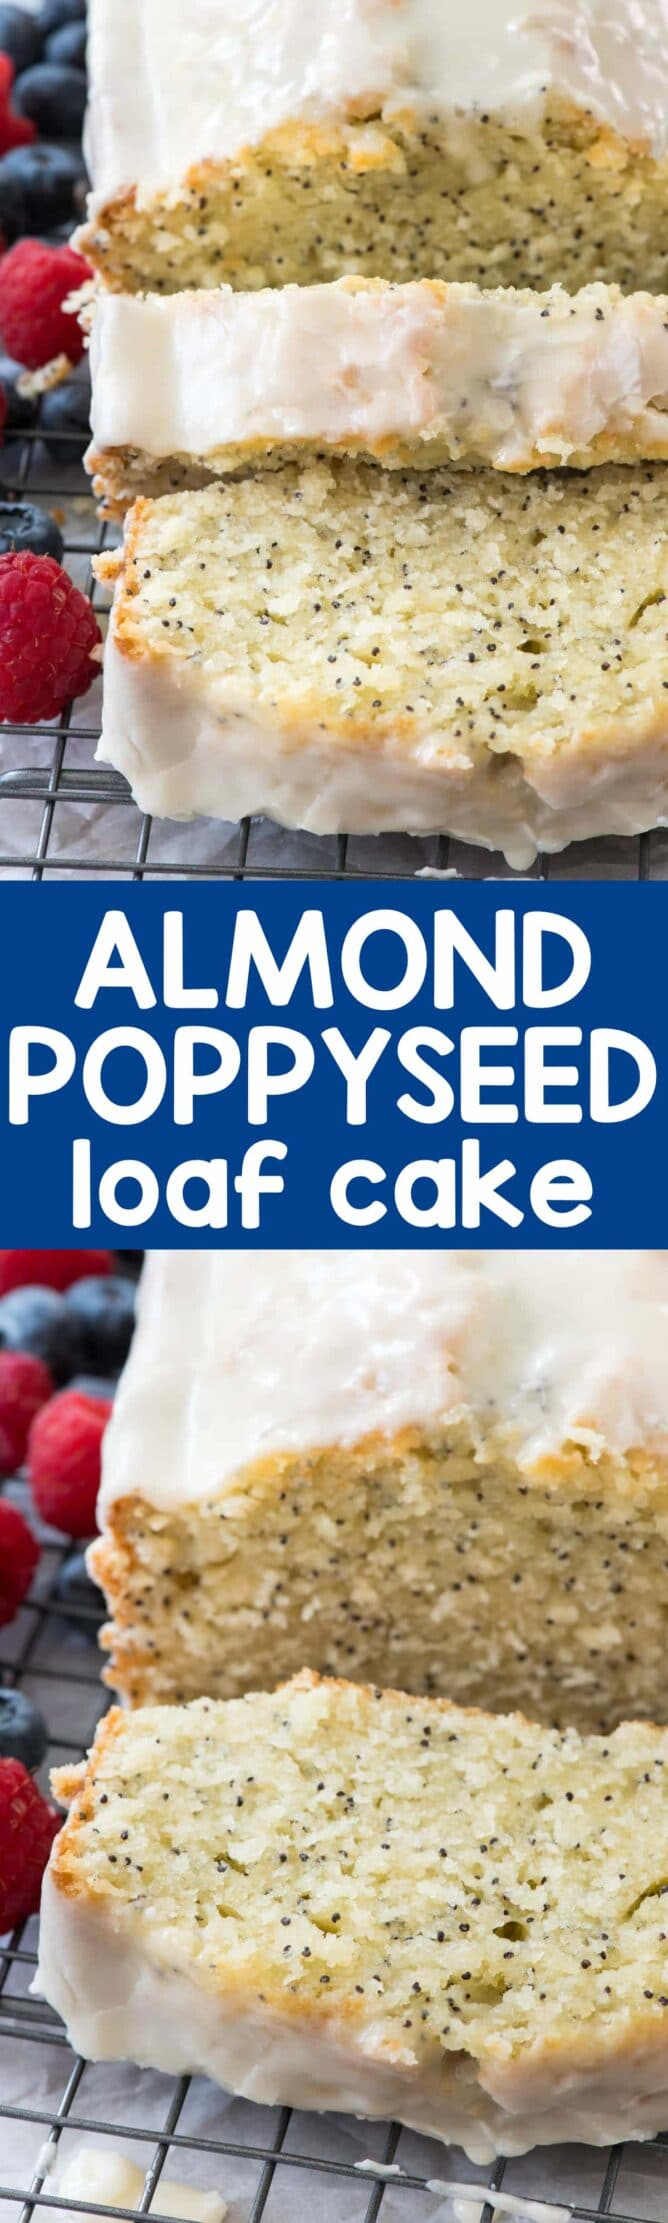 Almond Poppyseed Loaf Cake collage photos